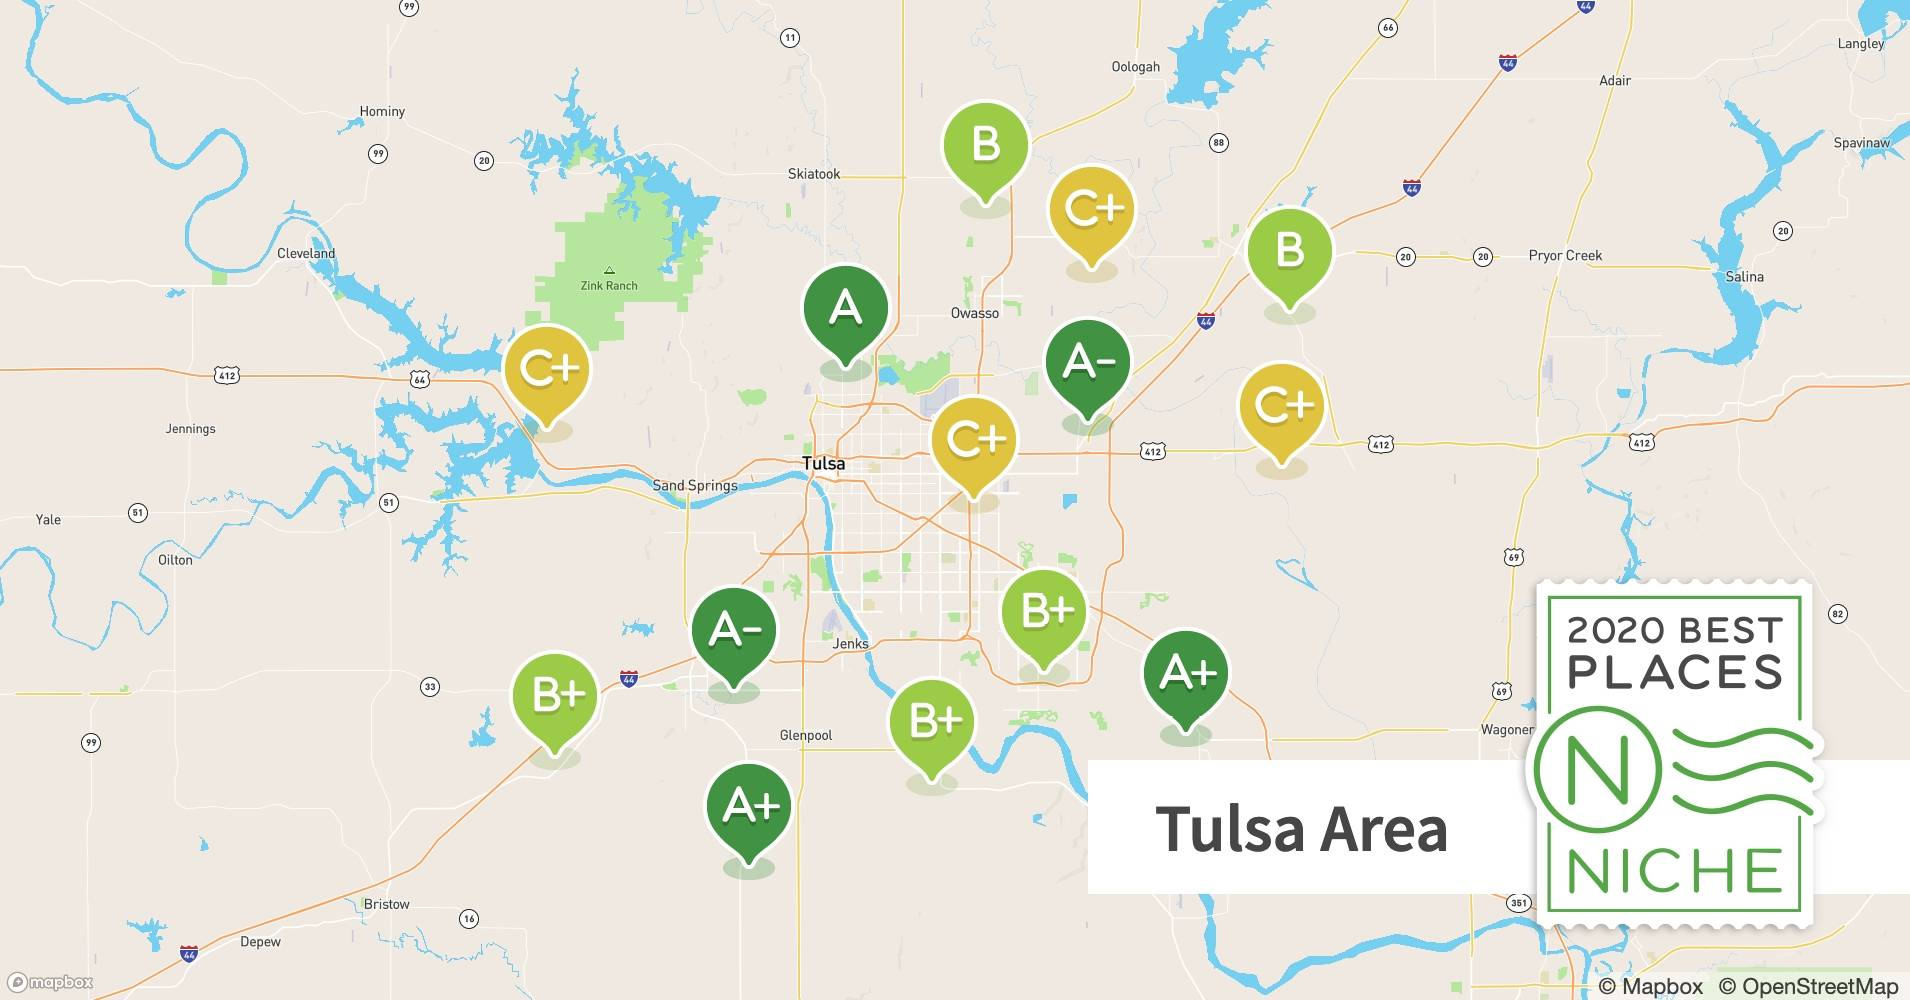 2020 best places to buy a house in tulsa area niche buy a house in tulsa area